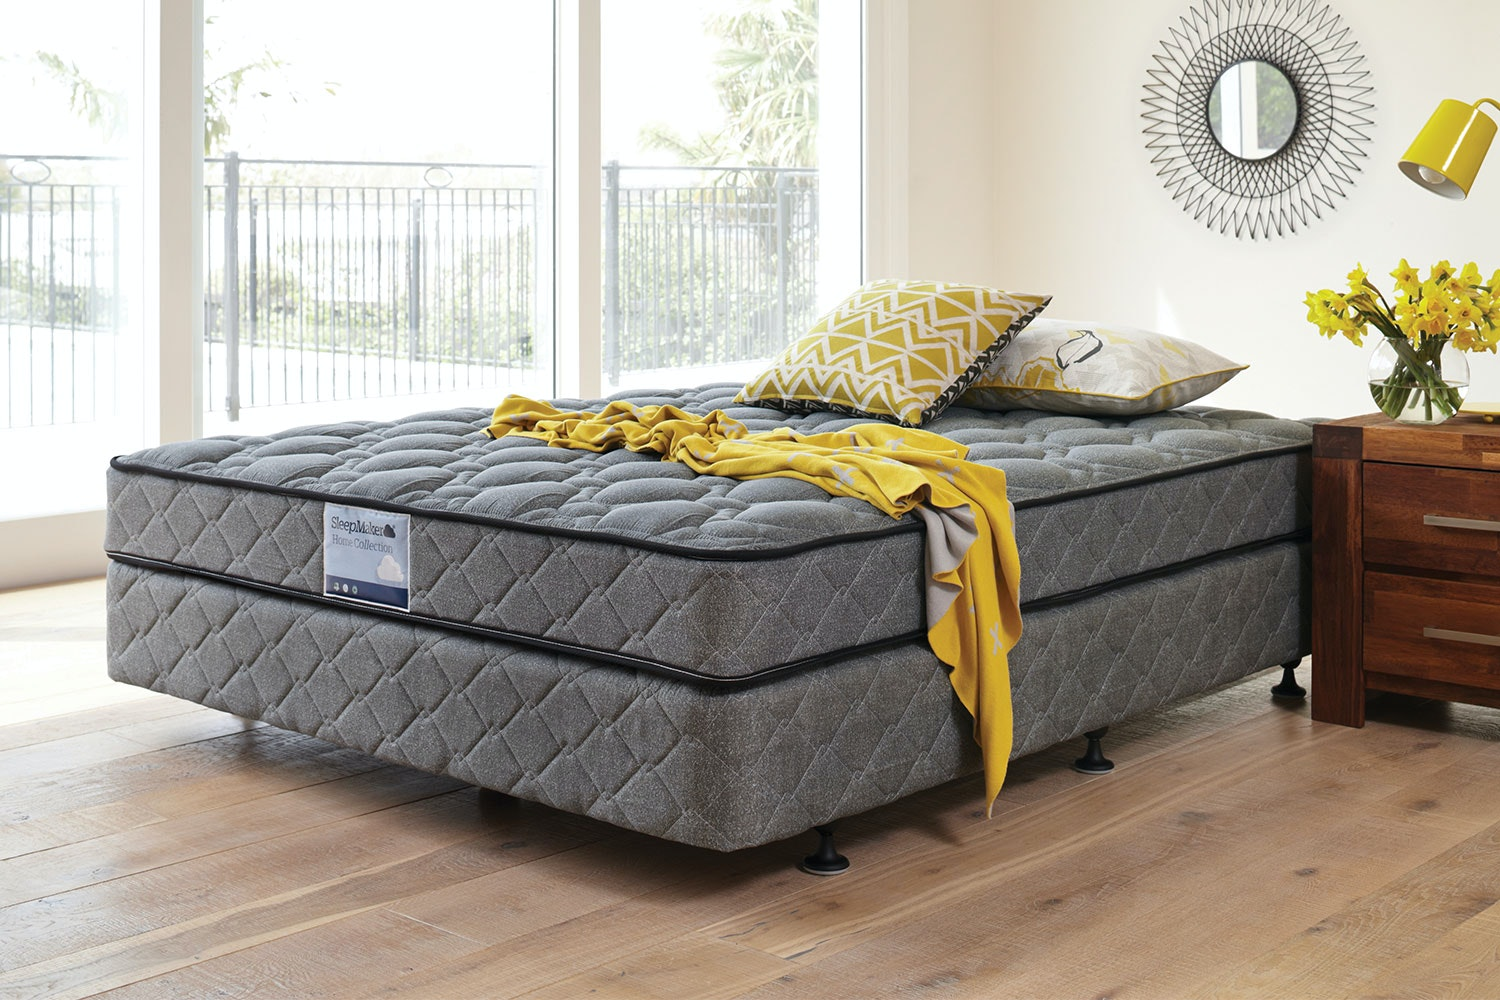 Slumber Support Classic Bed by Sleepmaker